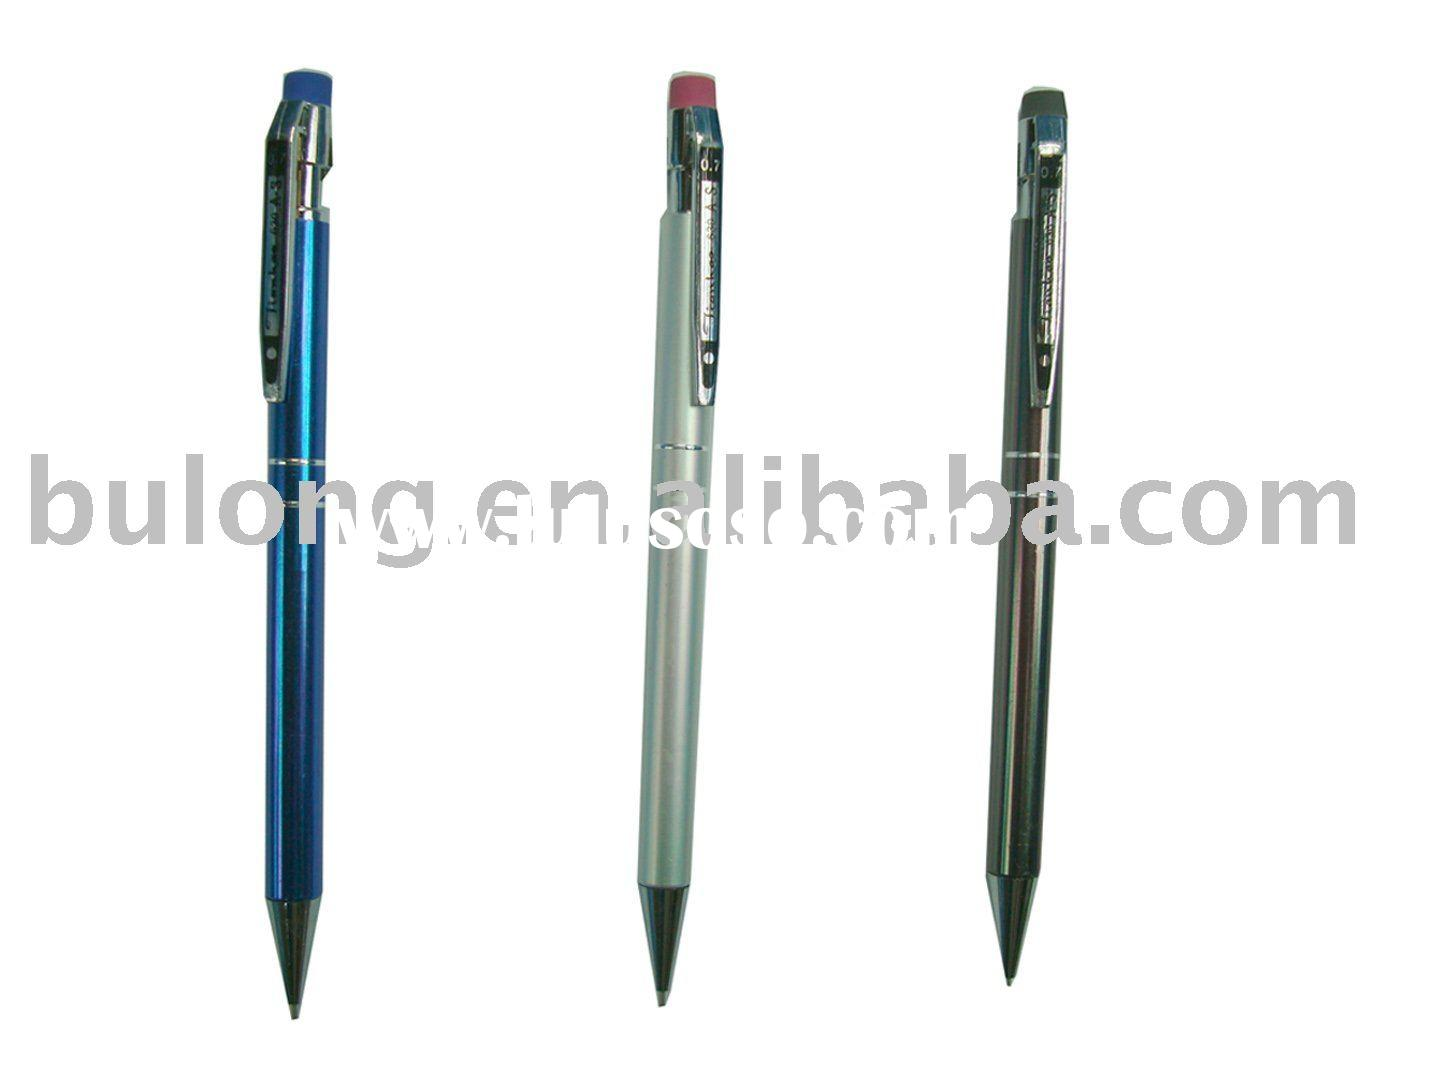 metal mechanical pencil with eraser on the top